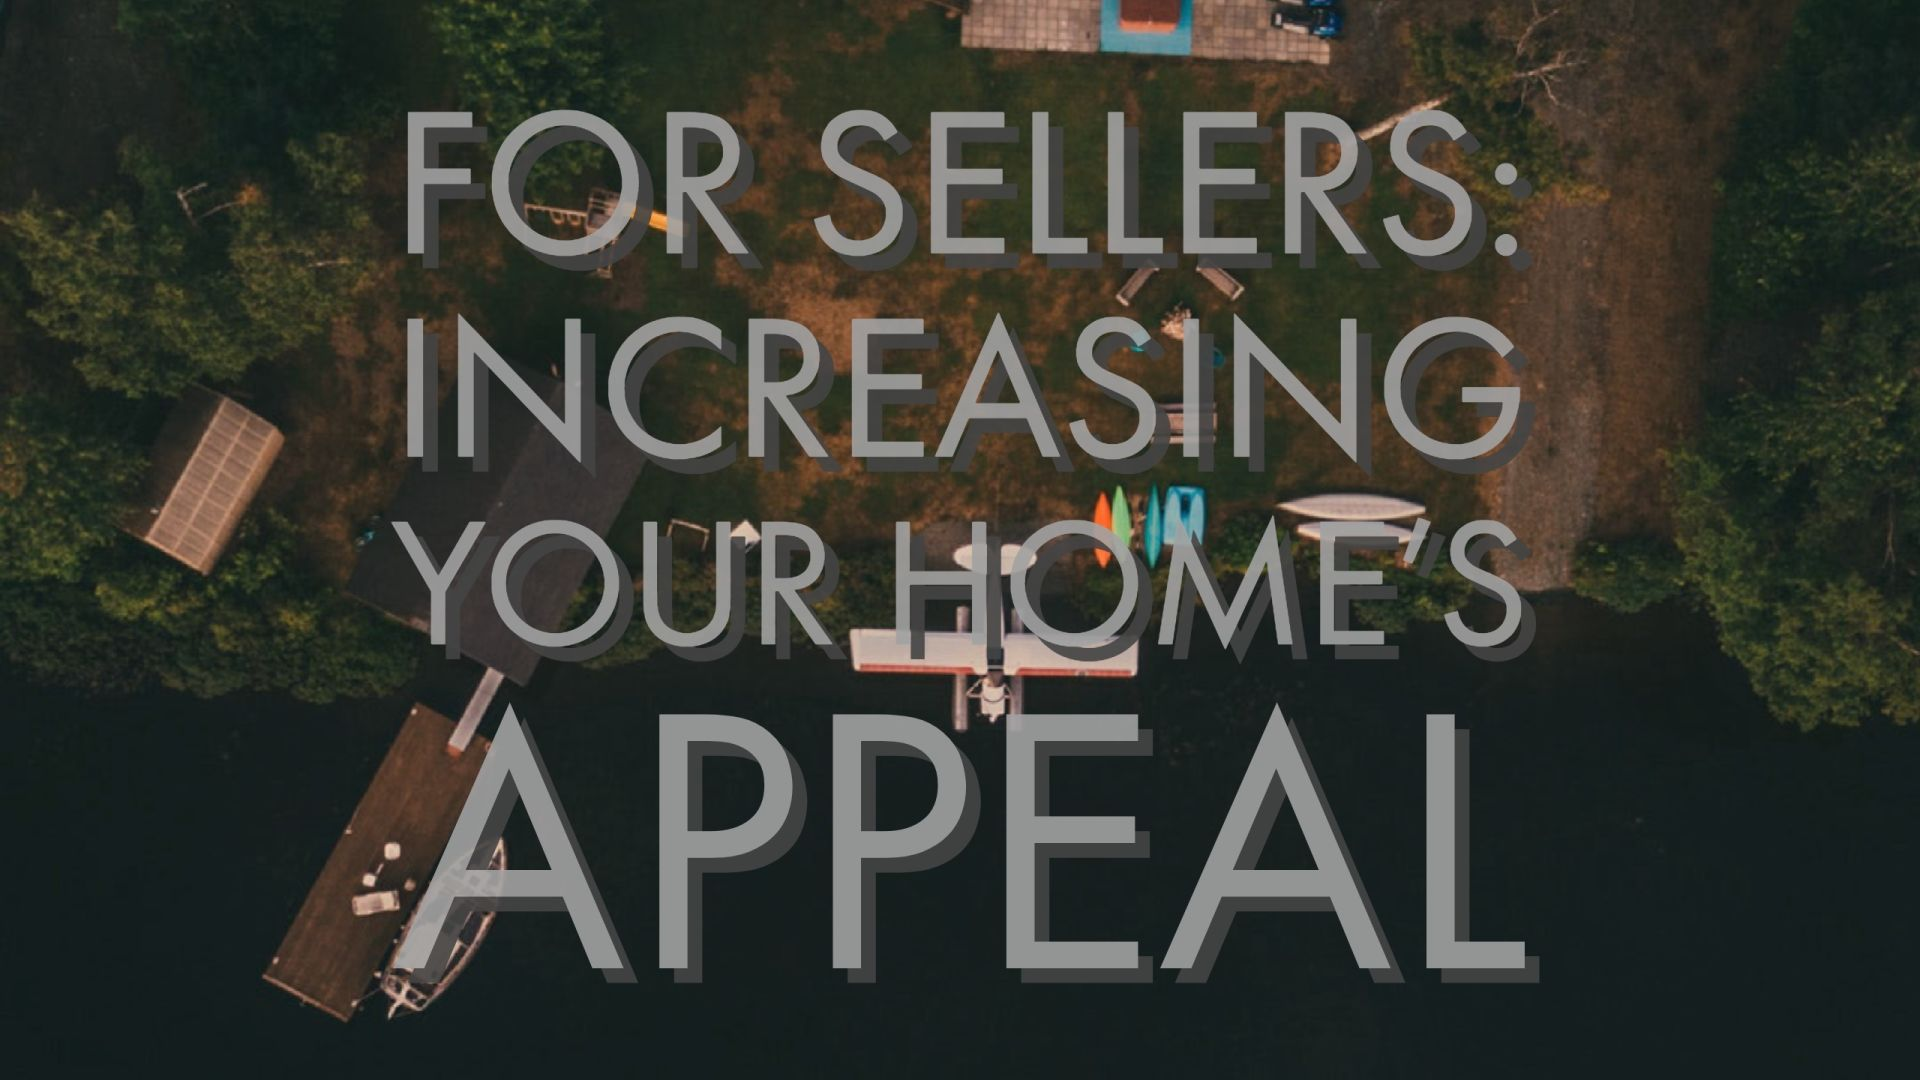 For Sellers: Increasing Your Home's Appeal